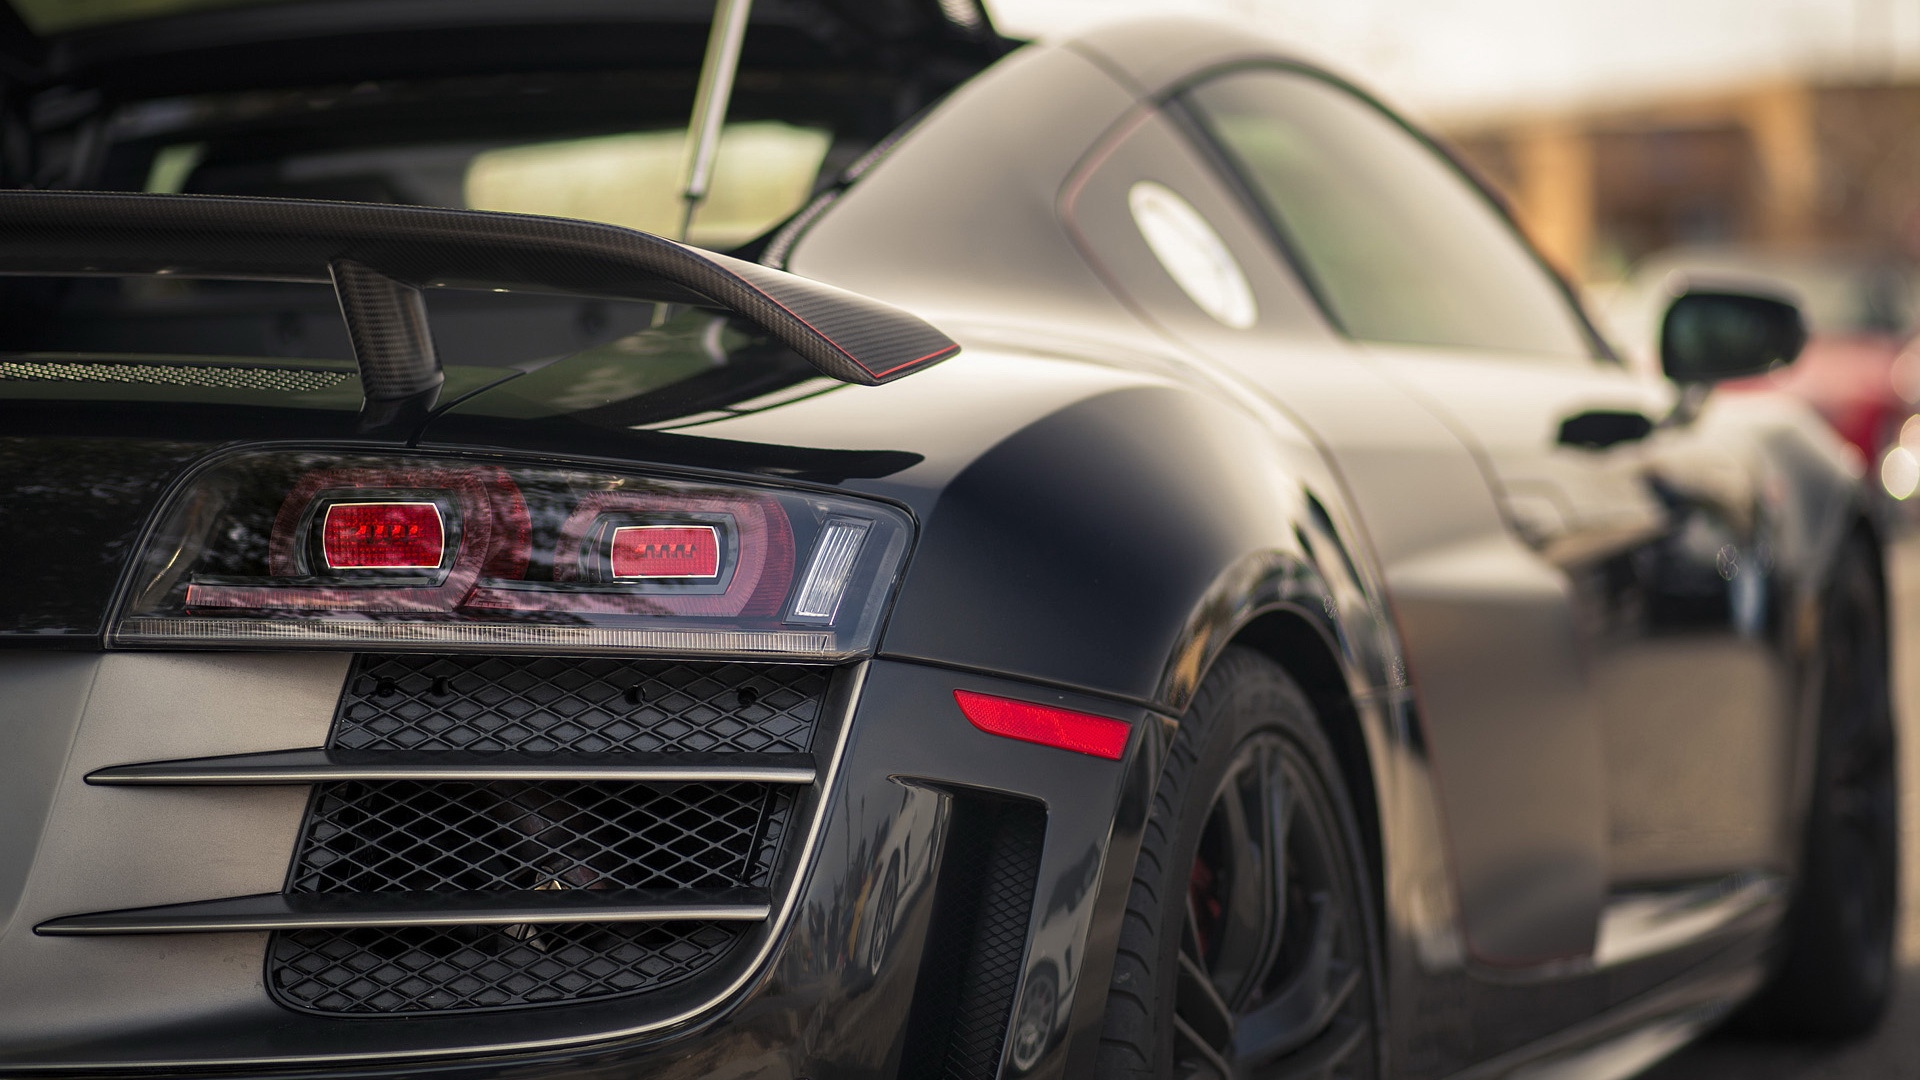 buttocks,rear end,auto,cars,bumper,r8,behind,headlights,rump,buns,gt,can,bum,railroad car,audi,audi hd,rear,prat